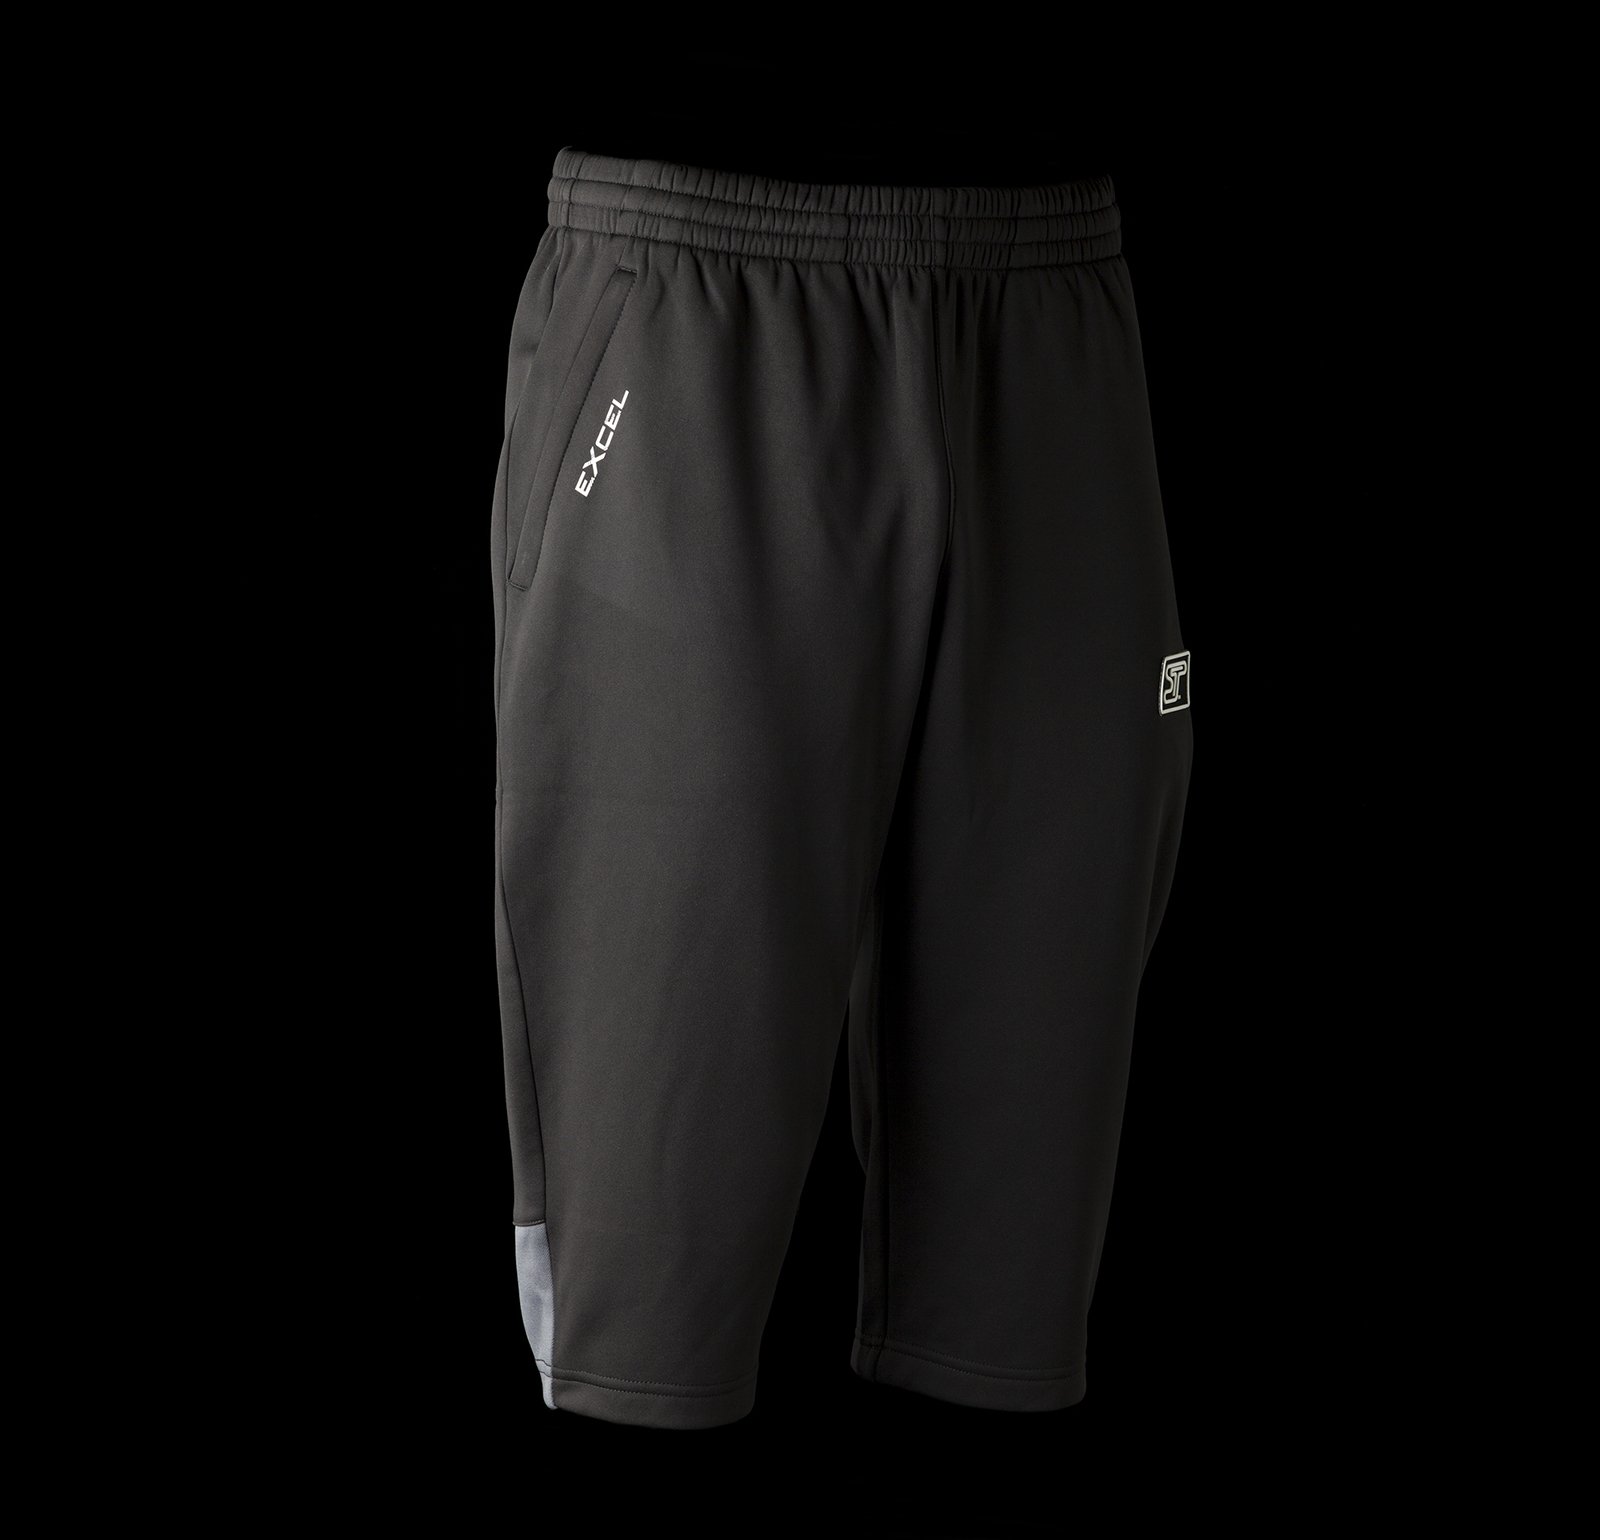 excel-3-4-pant-promo-67